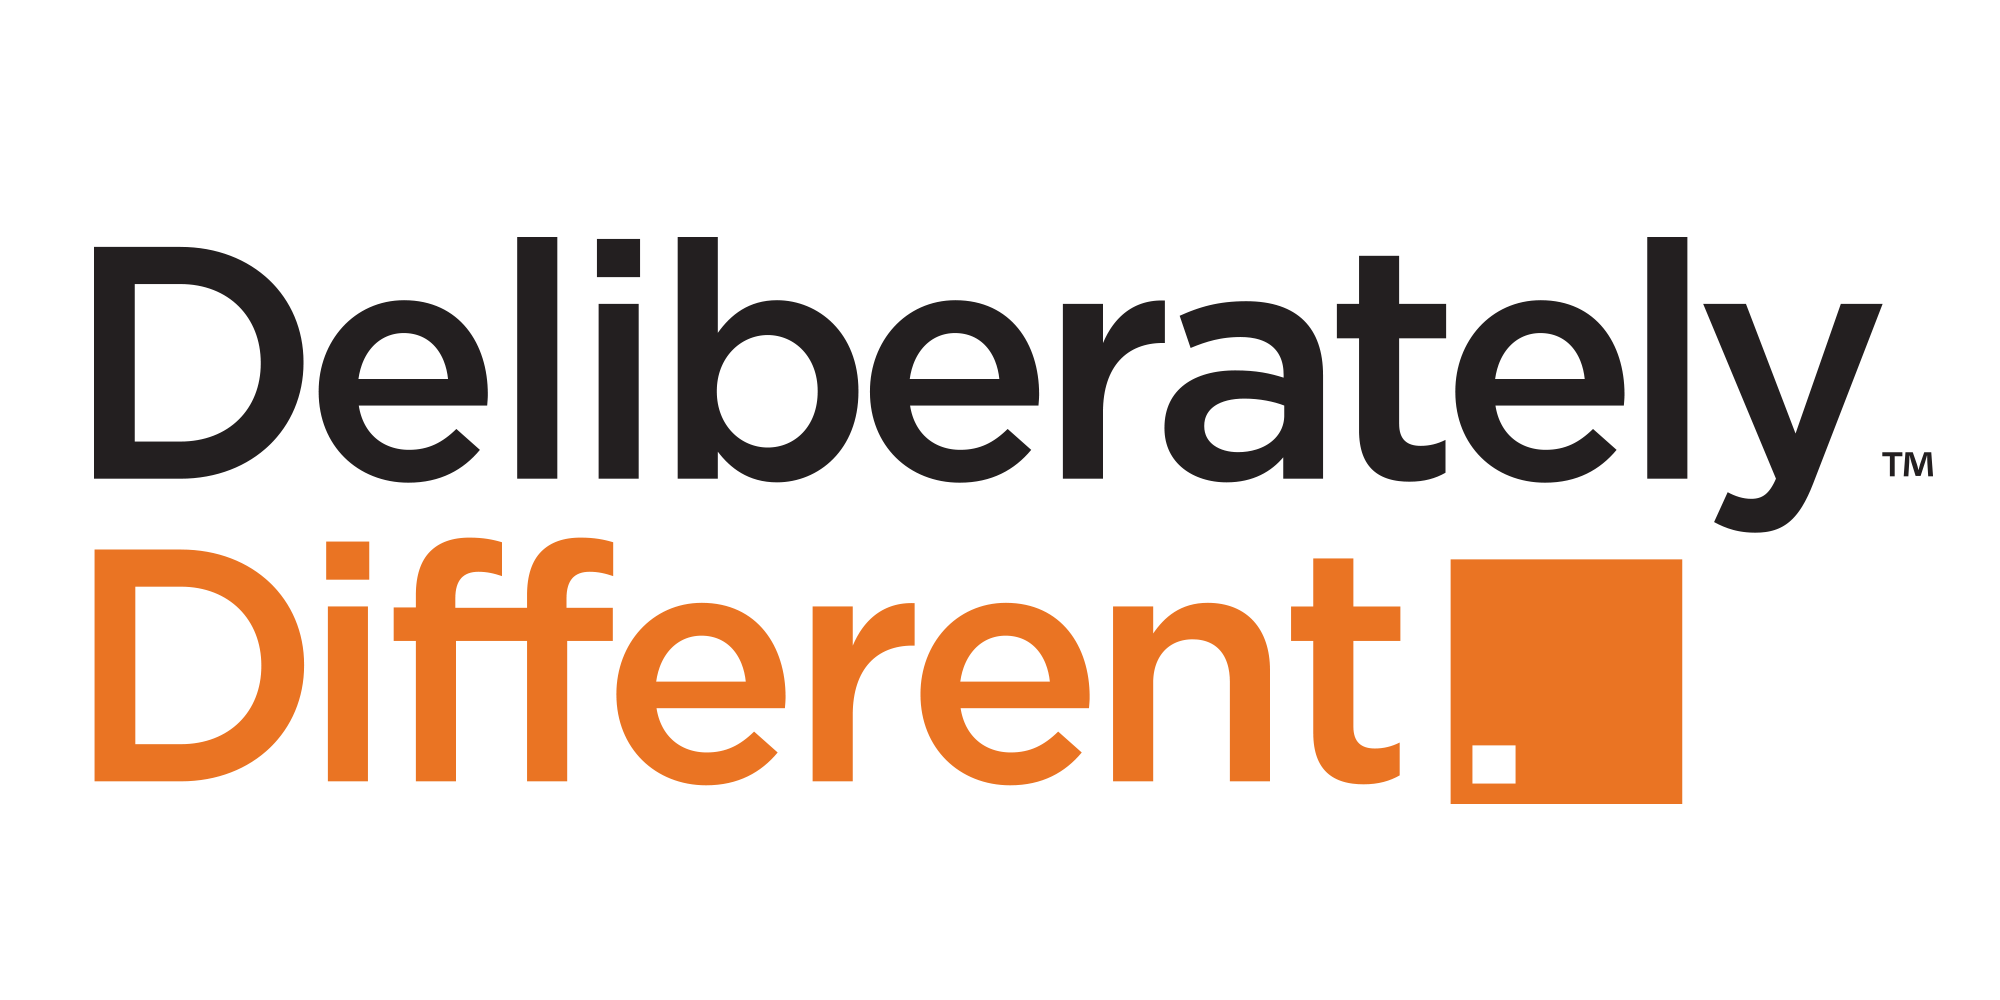 Logo-Deliberately-Different-Orange.png